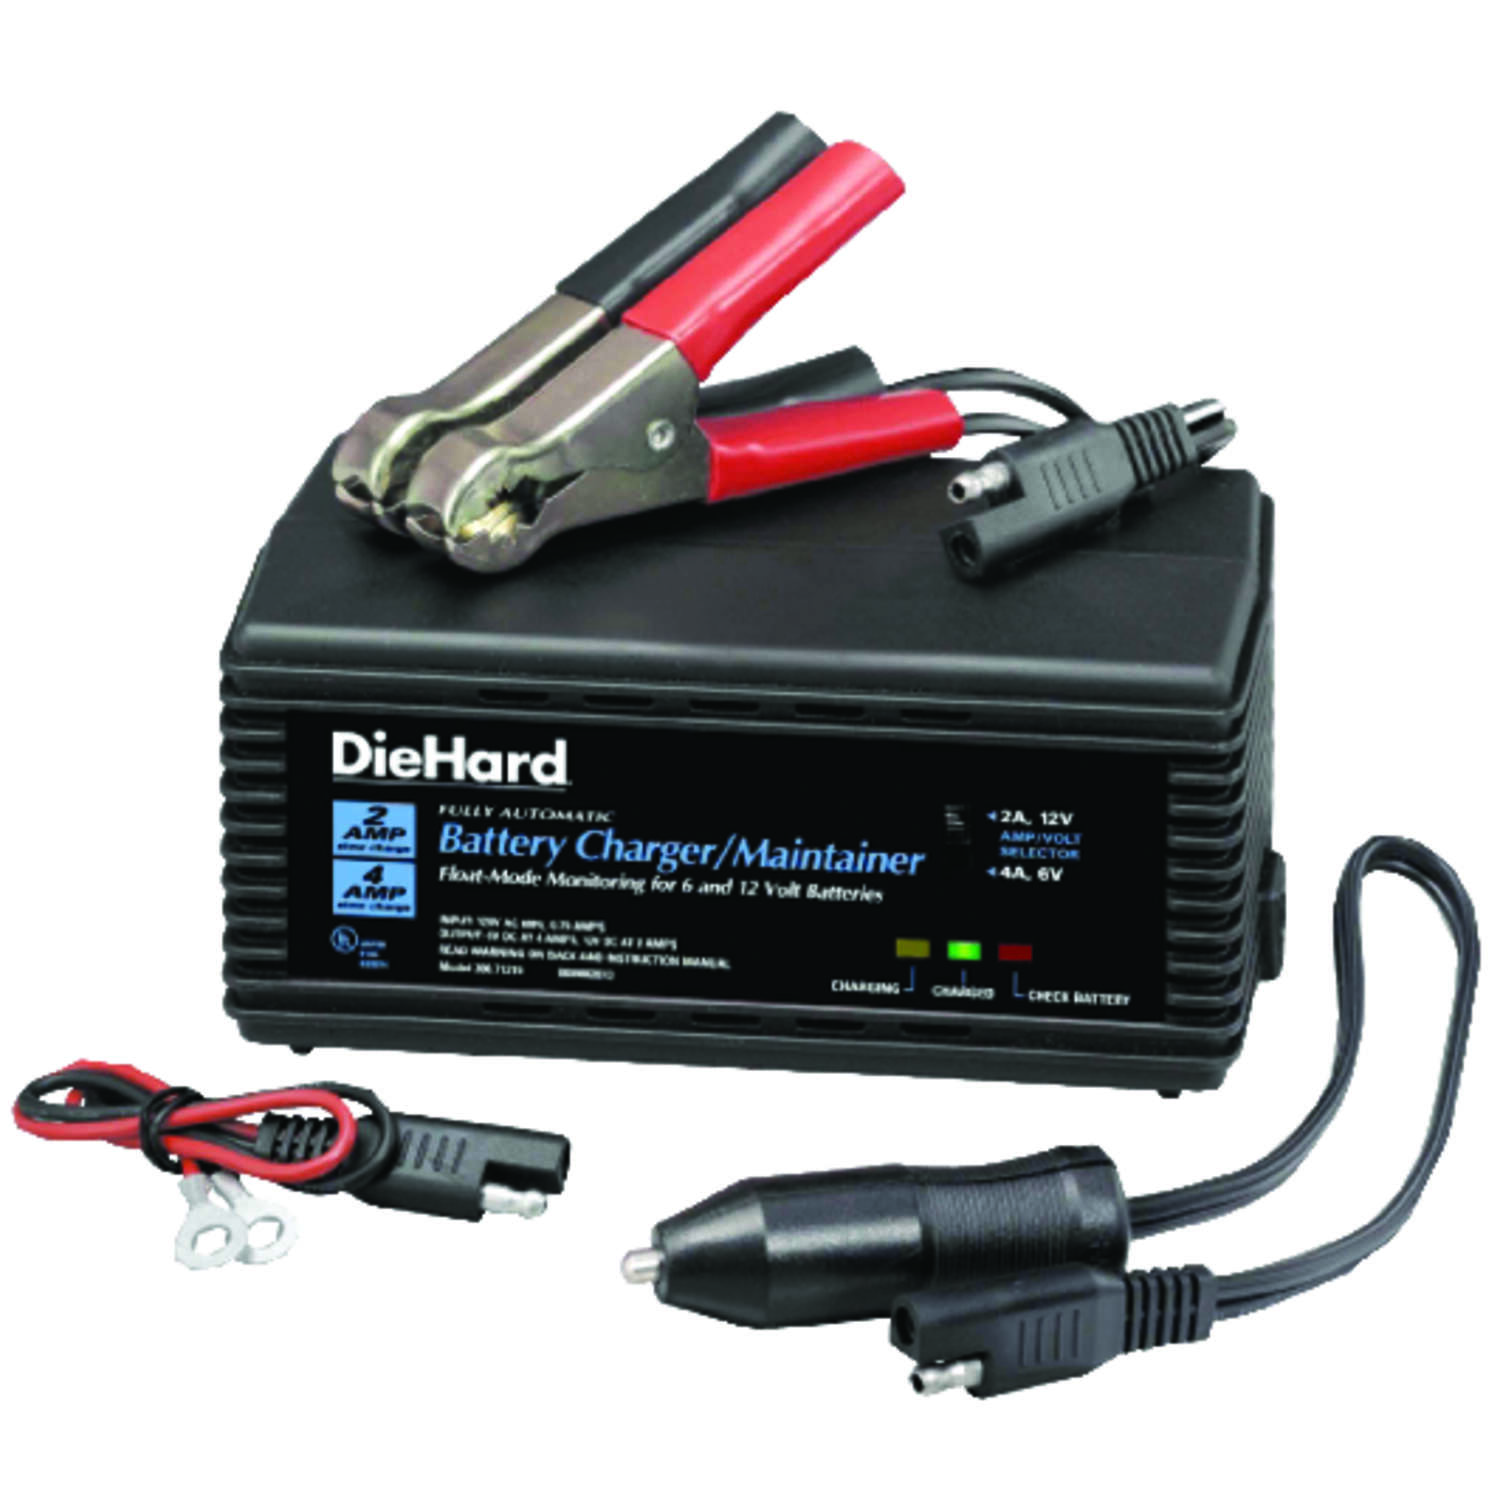 DieHard  Automatic  12 volt 2 amps Battery Charger/Maintainer